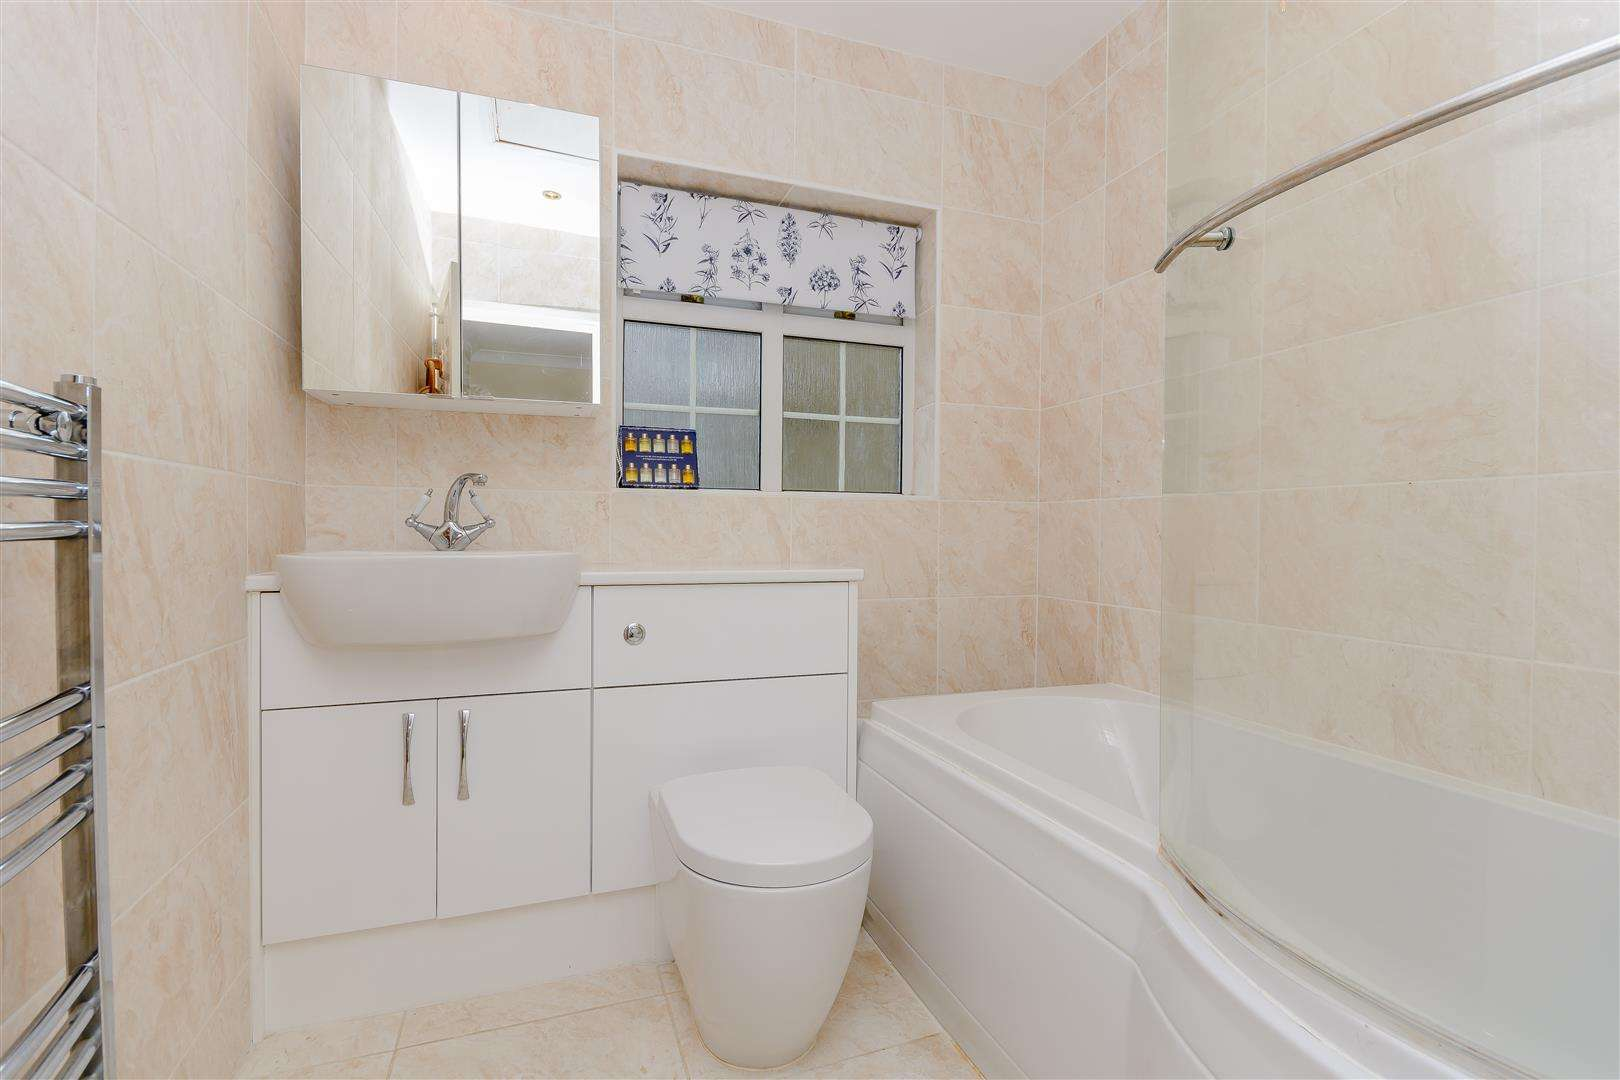 4 bed for sale in Merry Hill Road, Bushey - (Property Image 10)